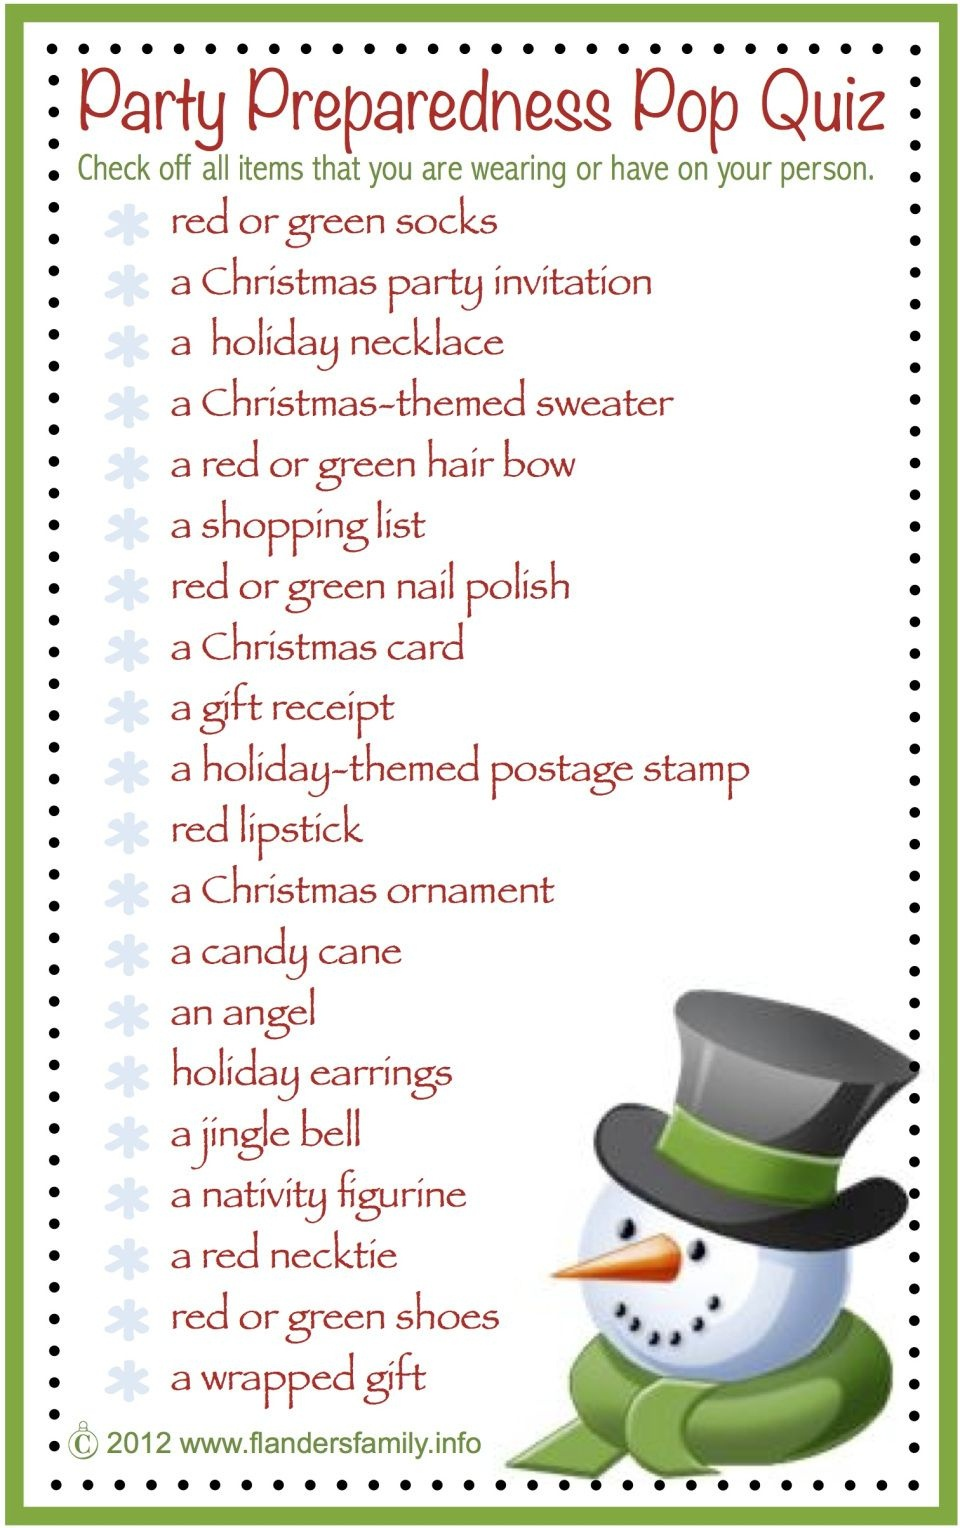 This Site Has Lots Of Free Printable Party Games And Activities For - Free Printable Christmas Family Games